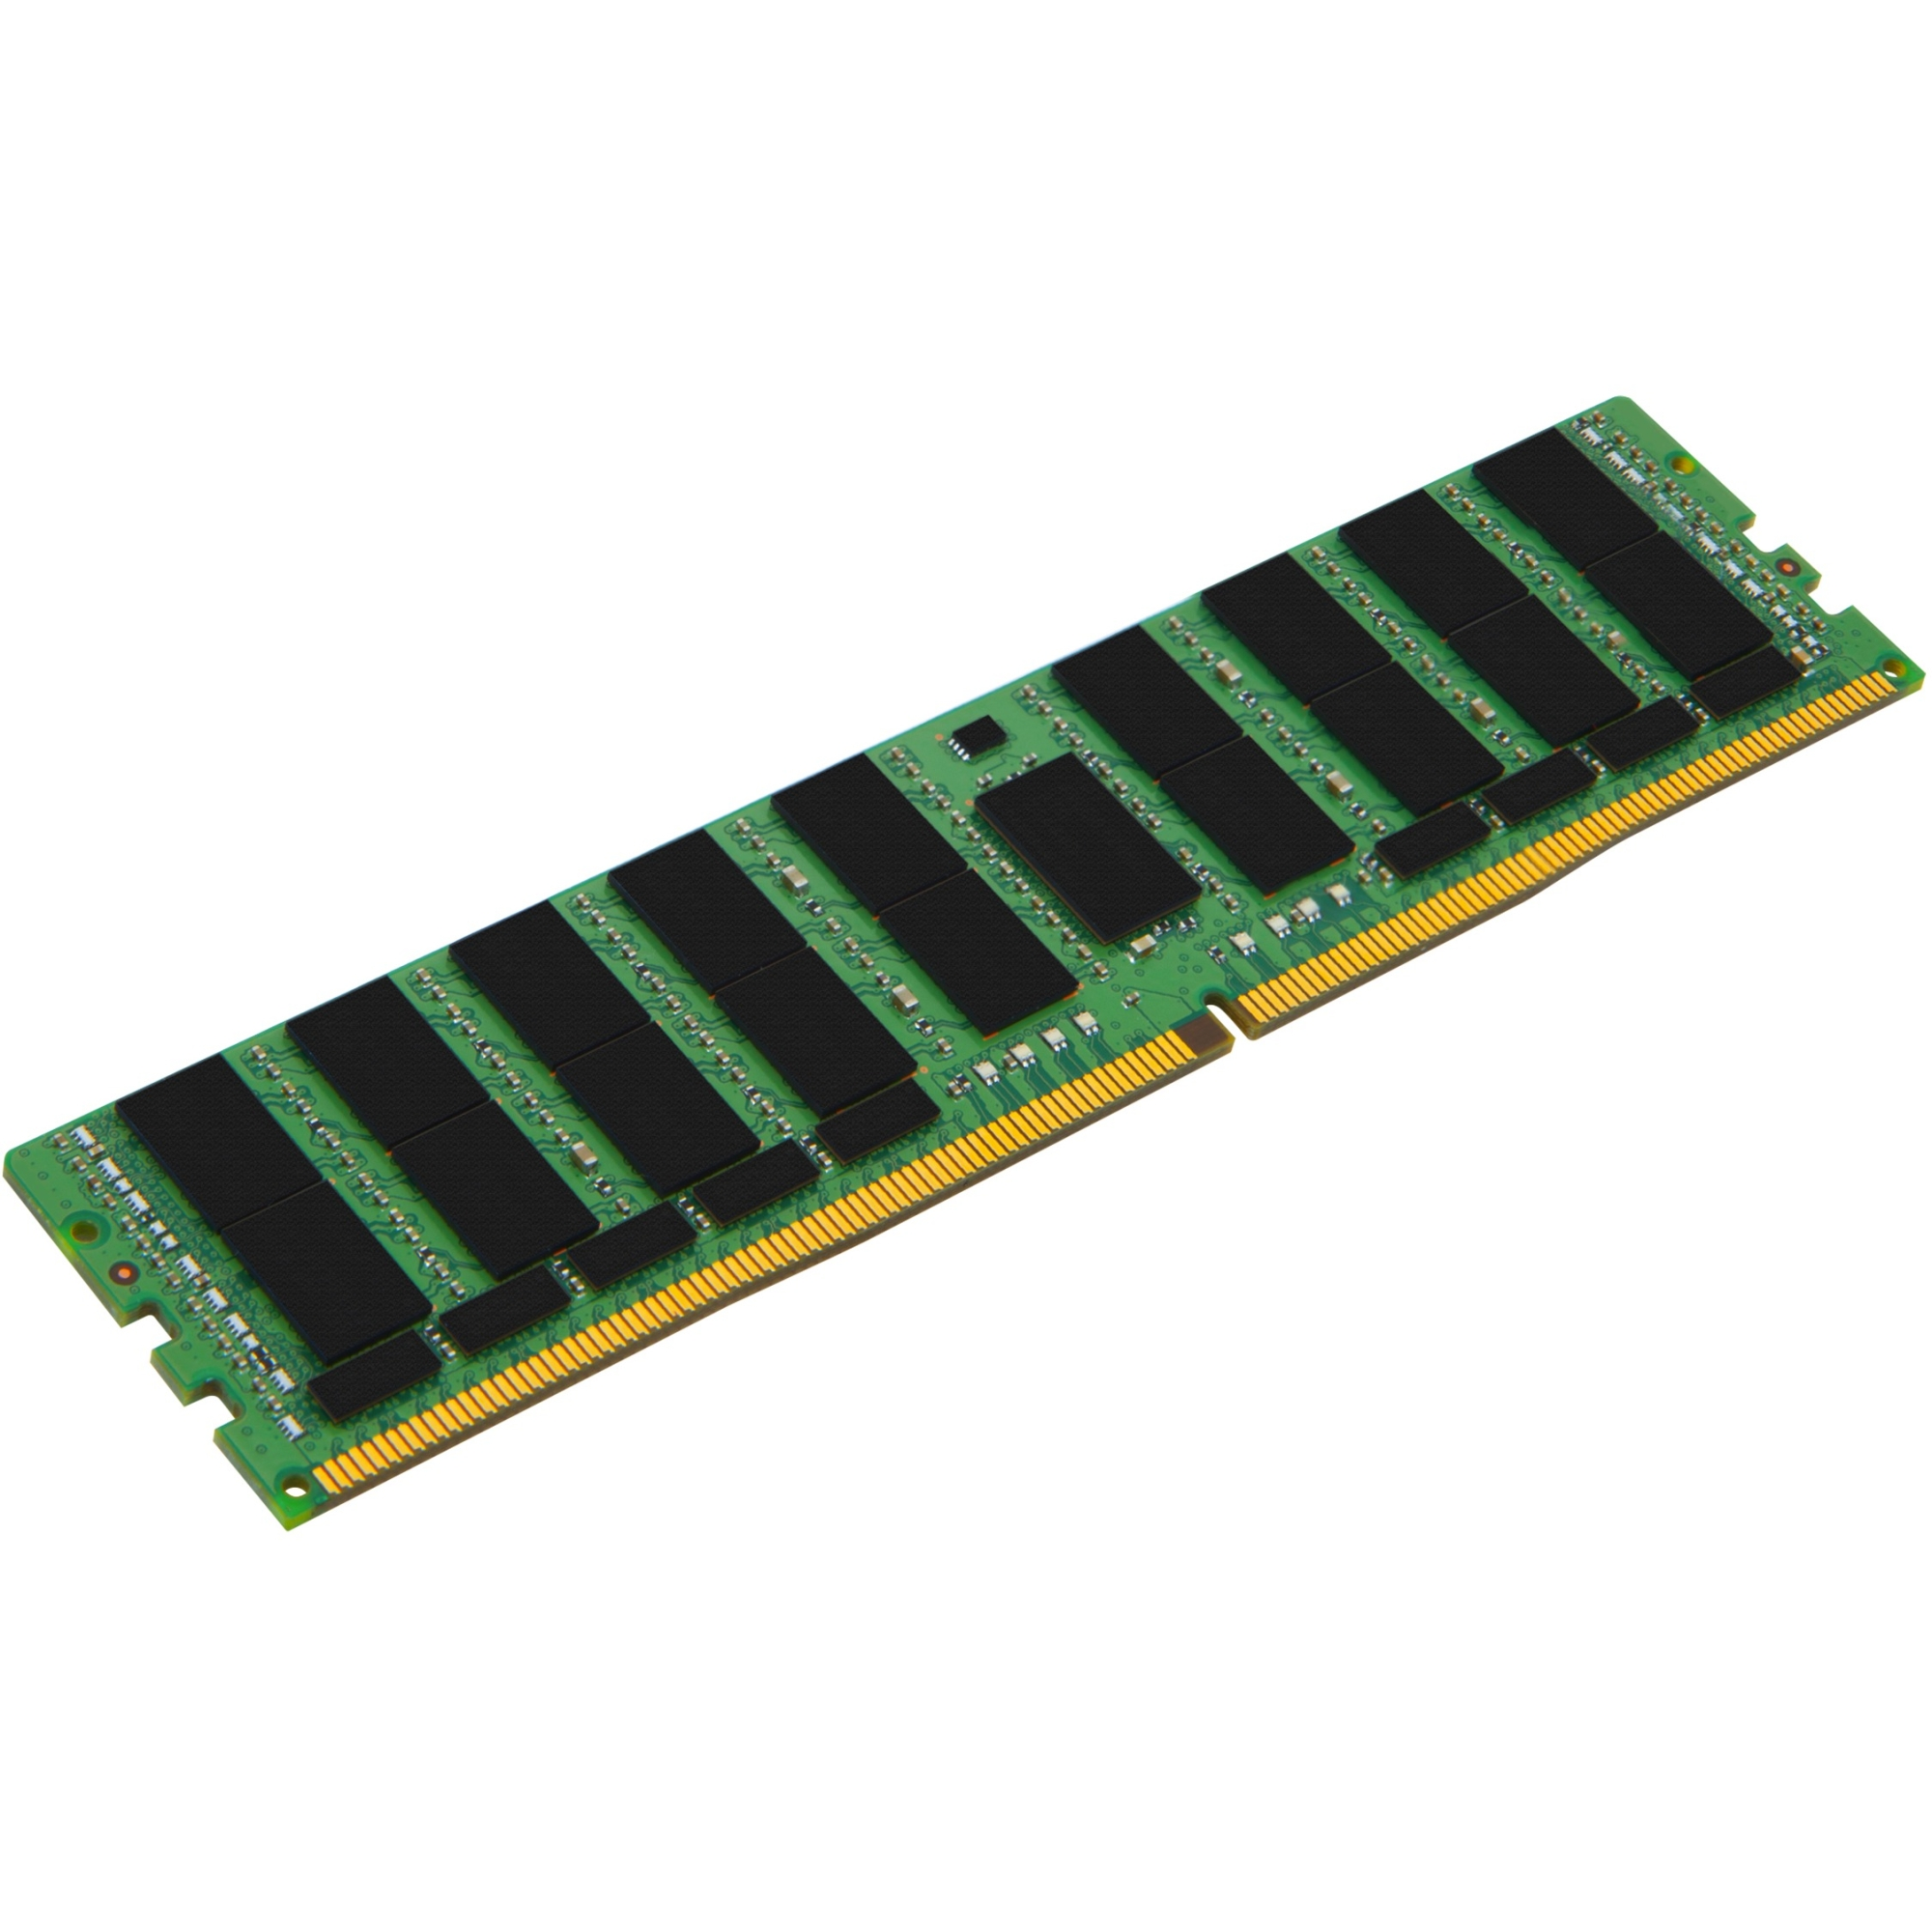 Kingston KTH-PL424L/32G 32gb Ddr4 2400mhz Lrdimm Dual Mem Rank Module